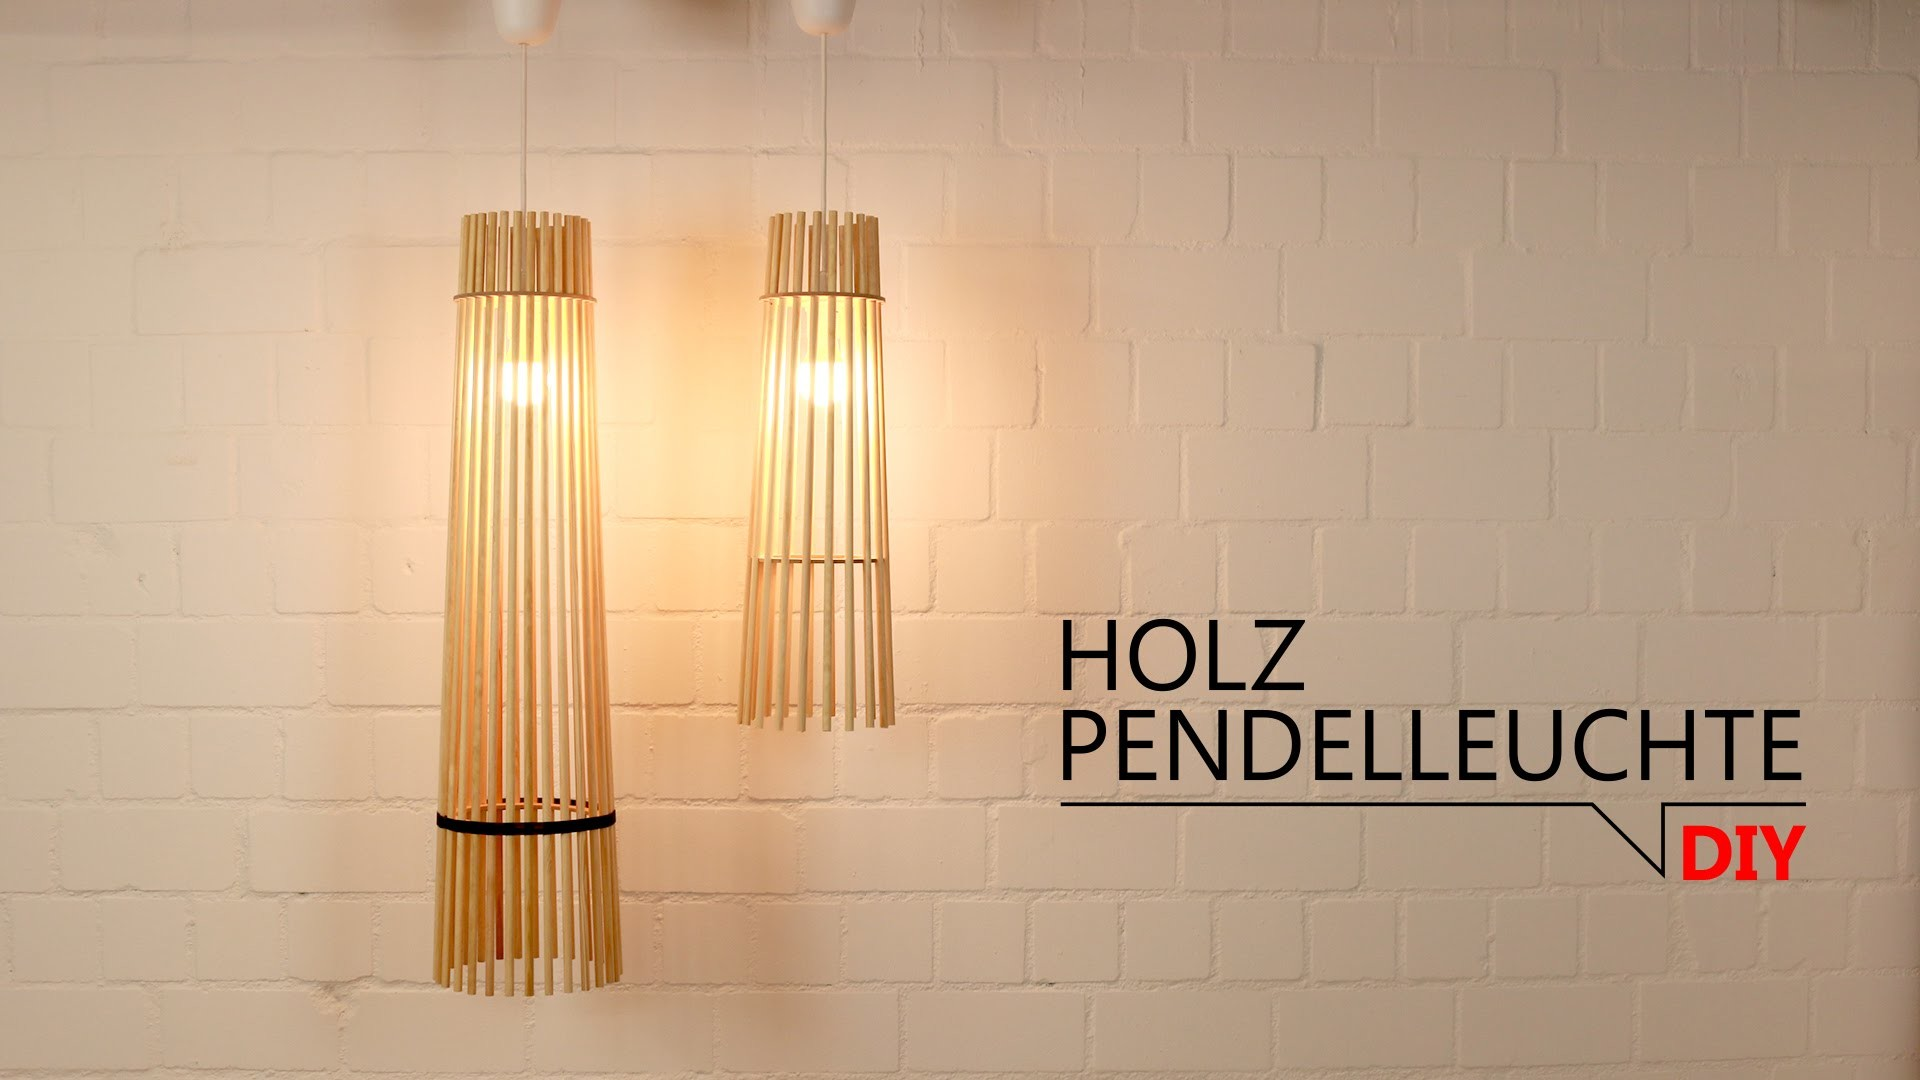 DIY - Holz Pendelleuchte. FREE DOWNLOAD TEMPLATES